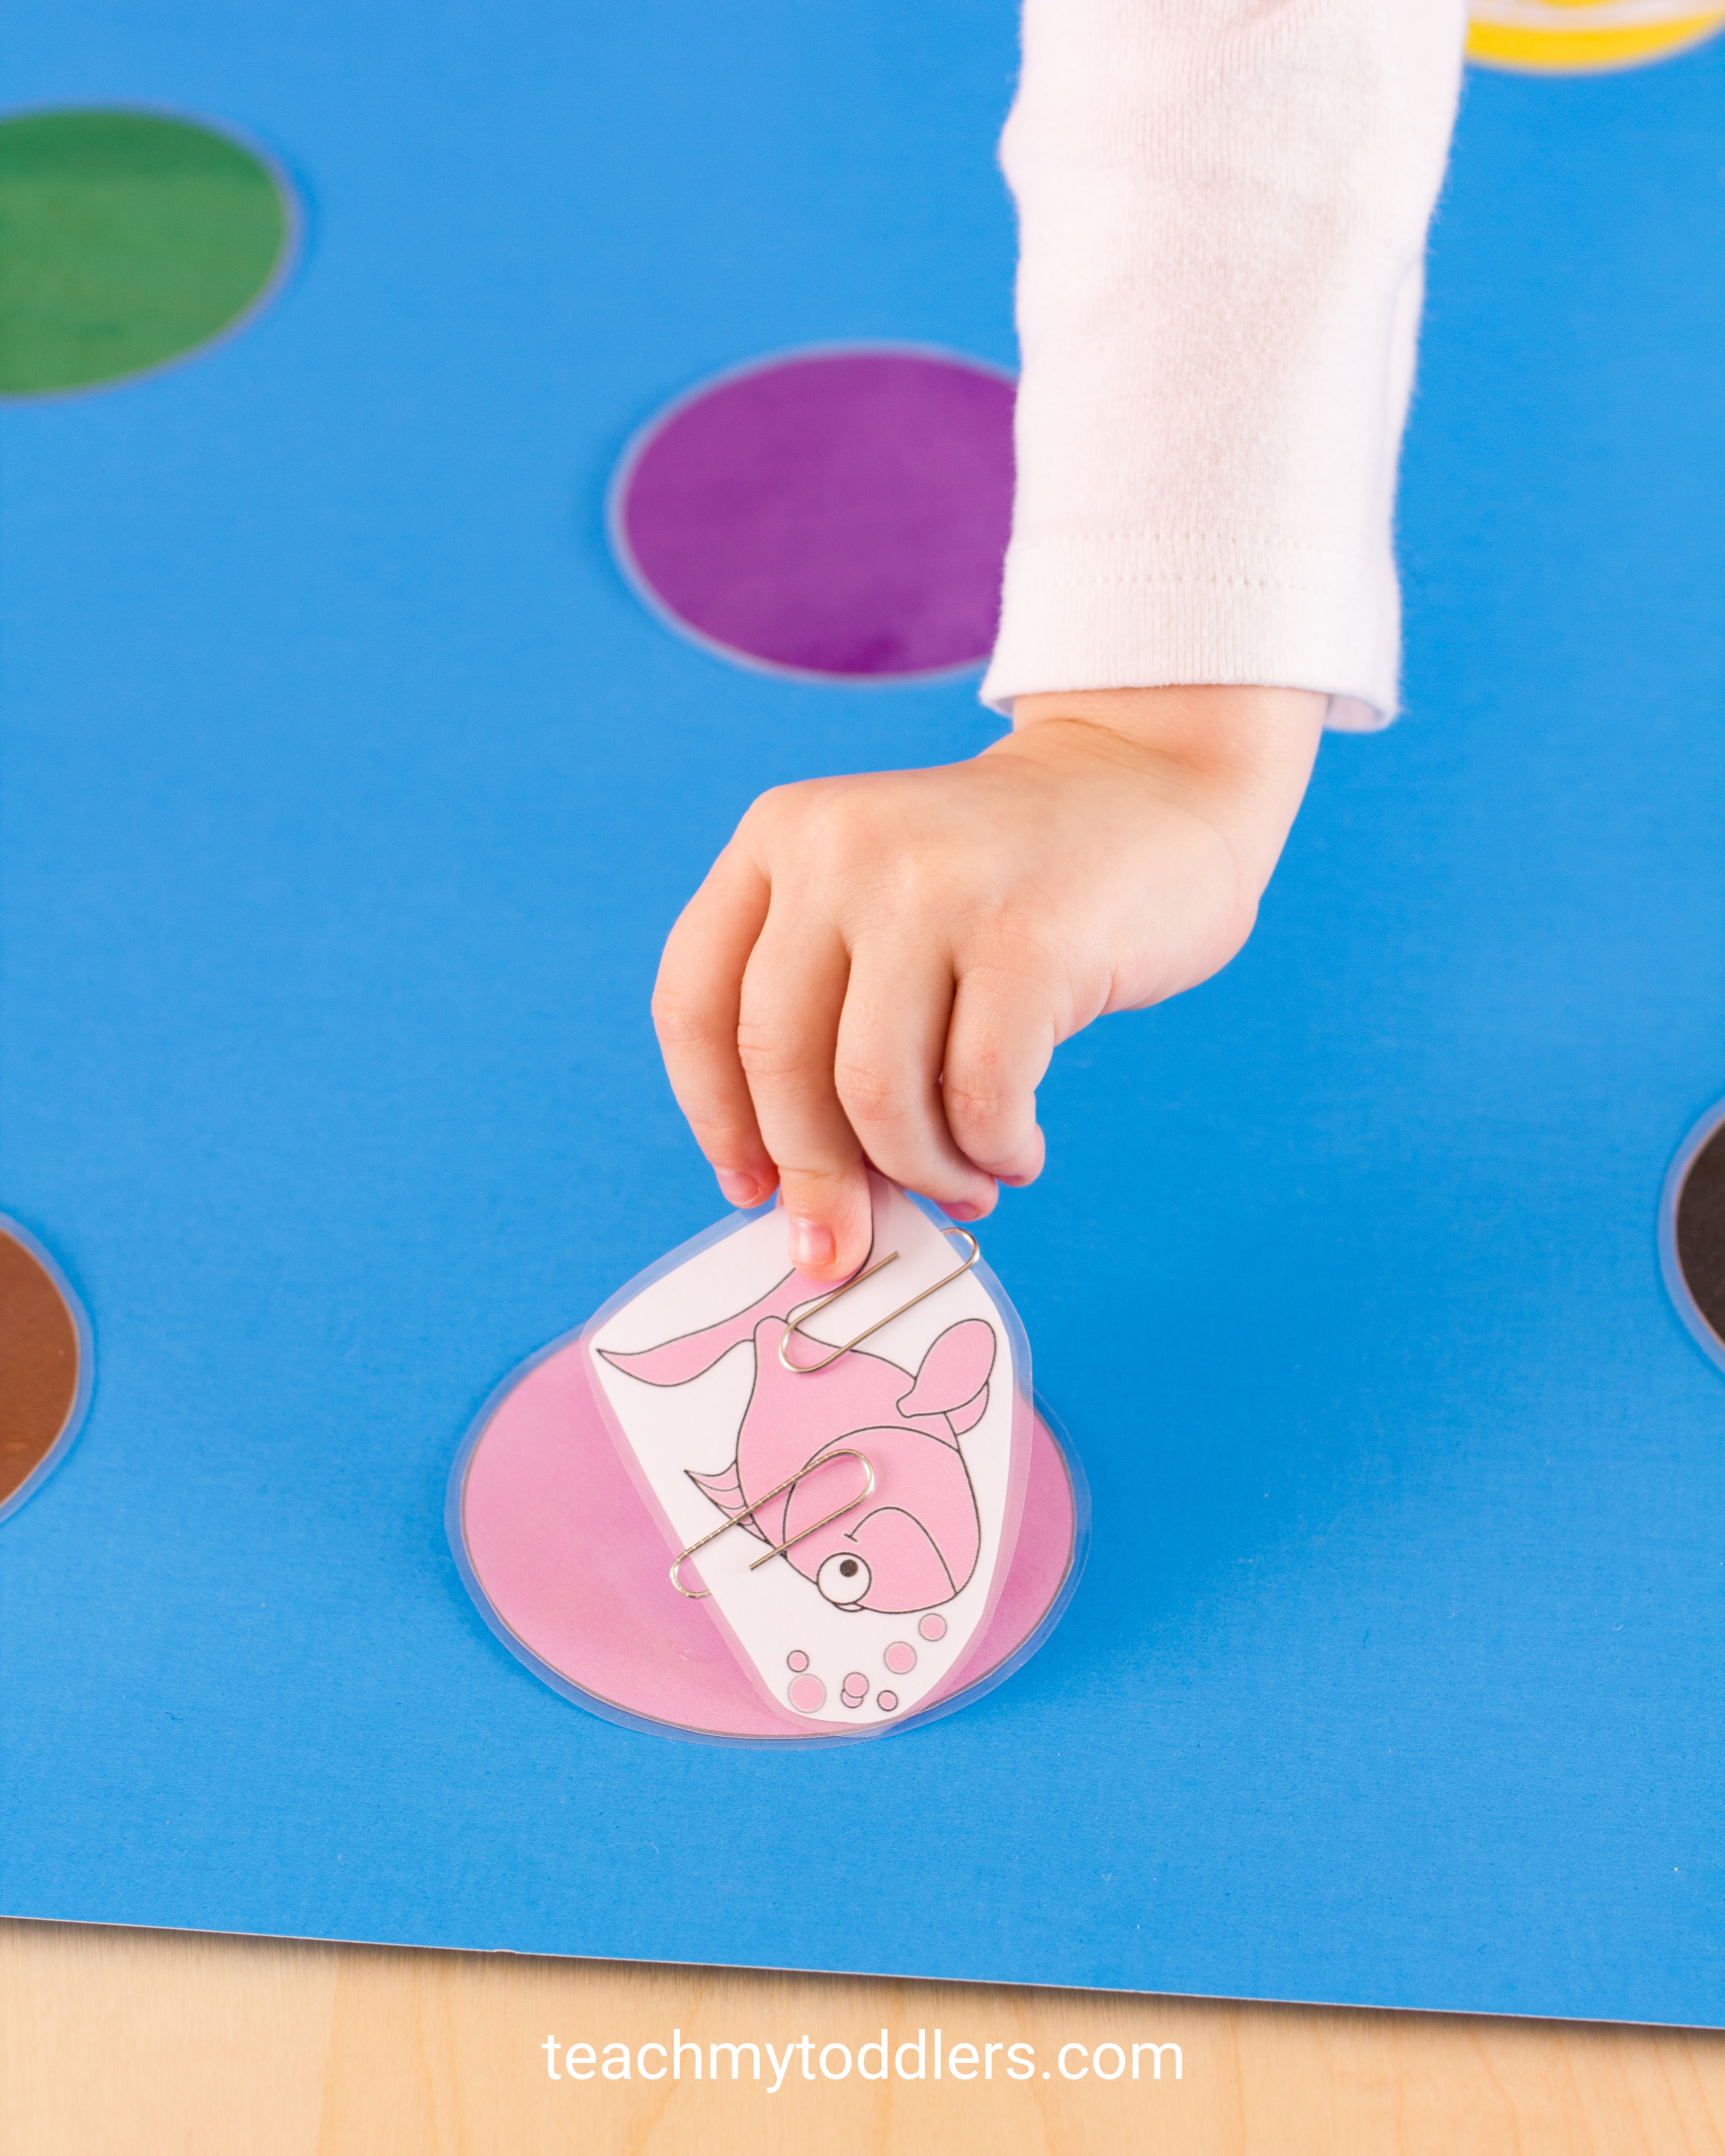 This fishing game is a fun activity to teach your toddlers colors